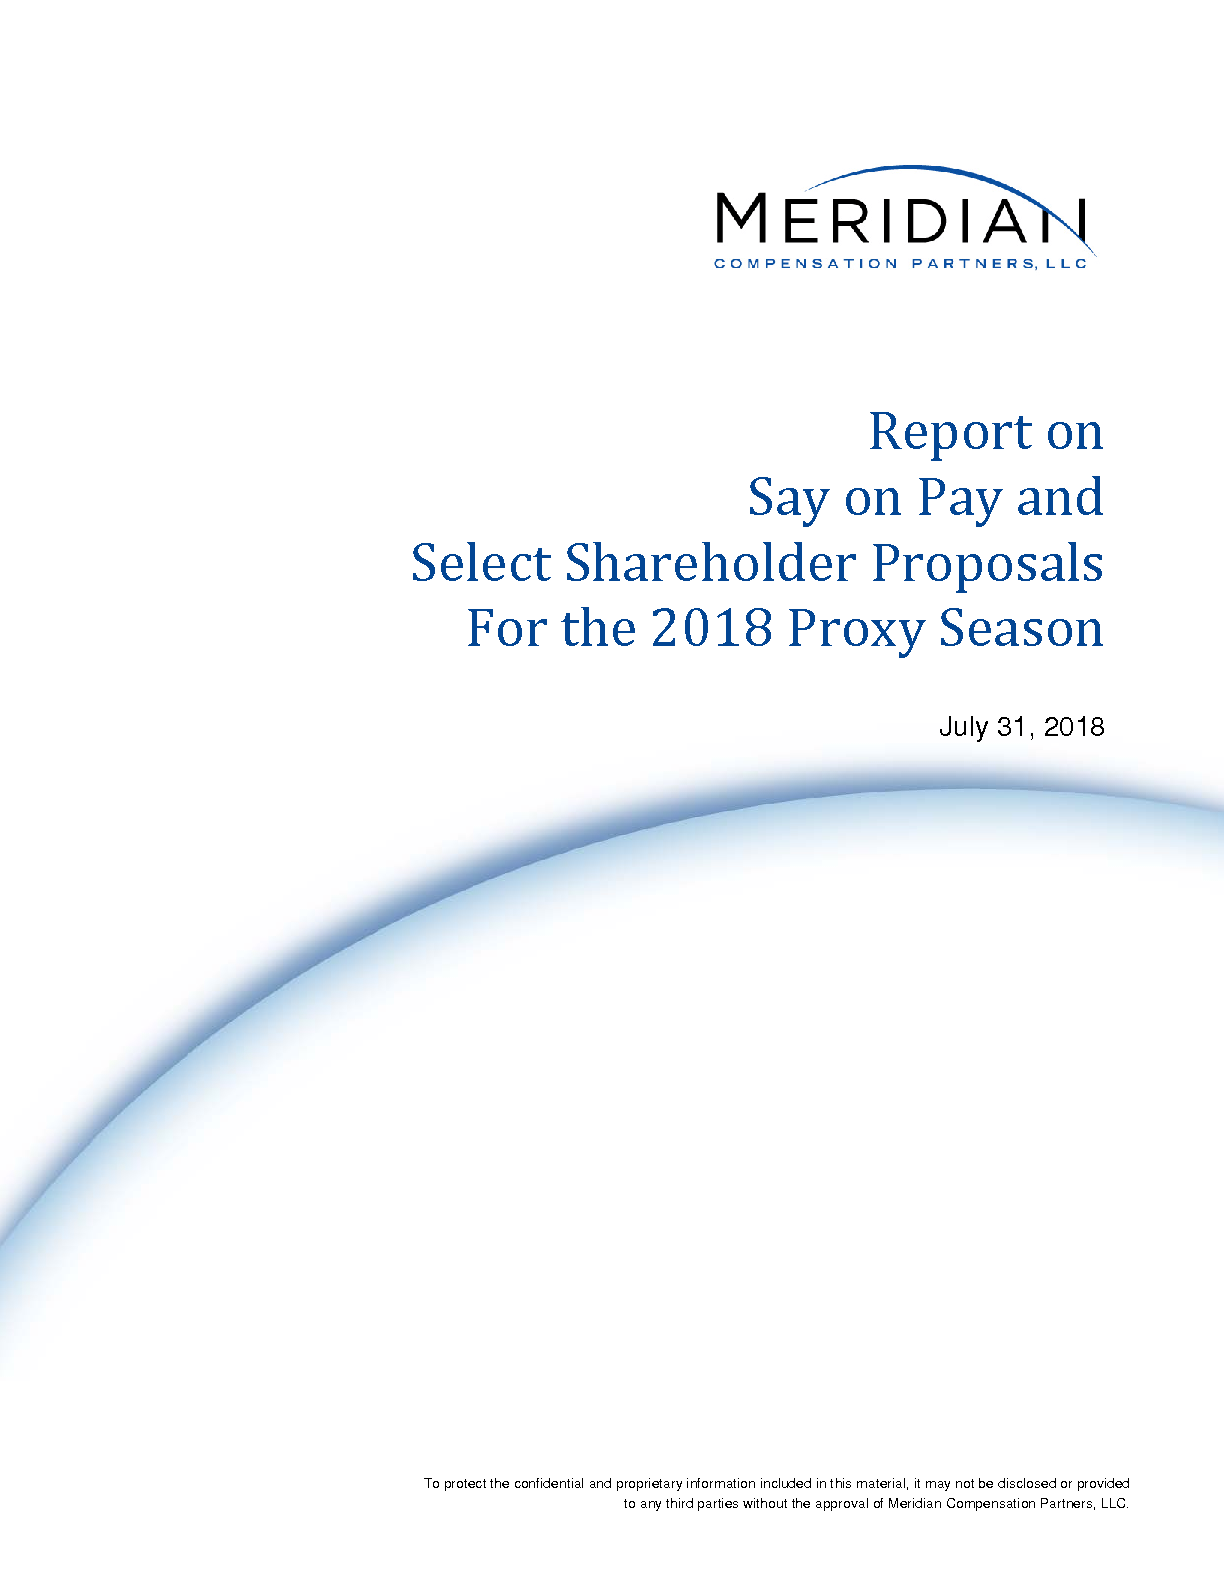 Report on Say on Pay and Select Shareholder Proposals For the 2018 Proxy Season (PDF)